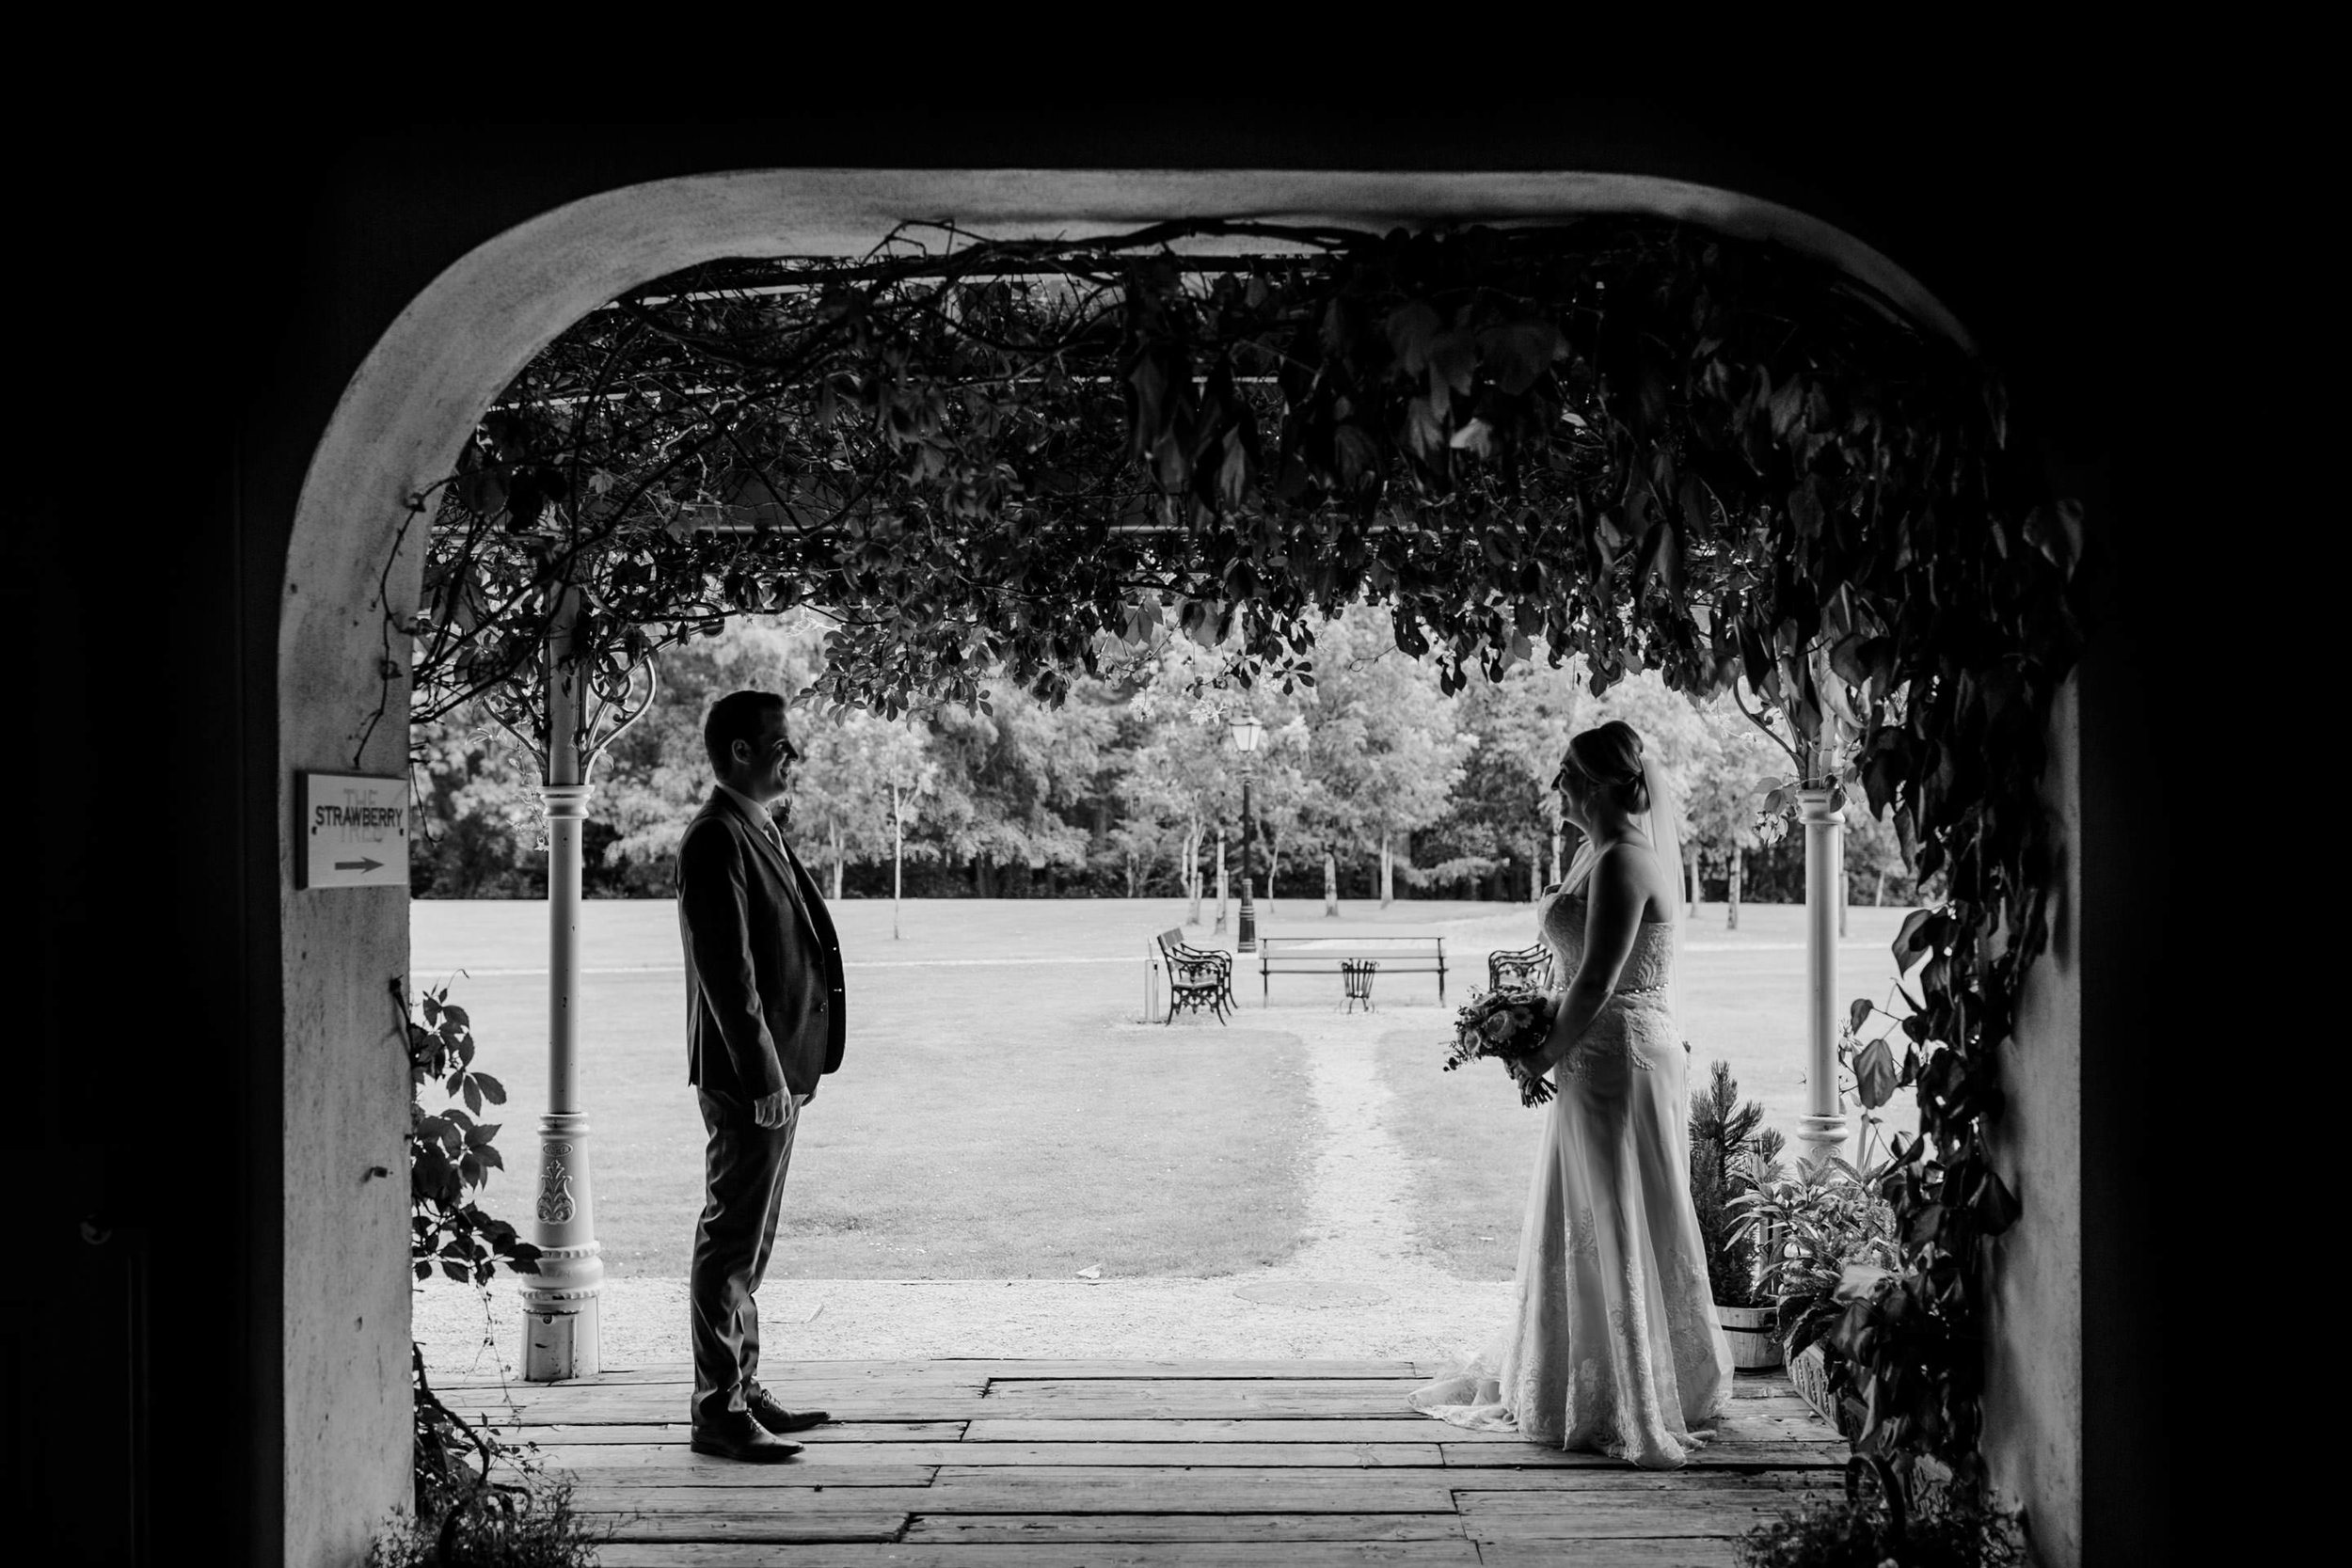 s&a_brooklodge_wedding_photographer_livia_figueiredo_27.jpg